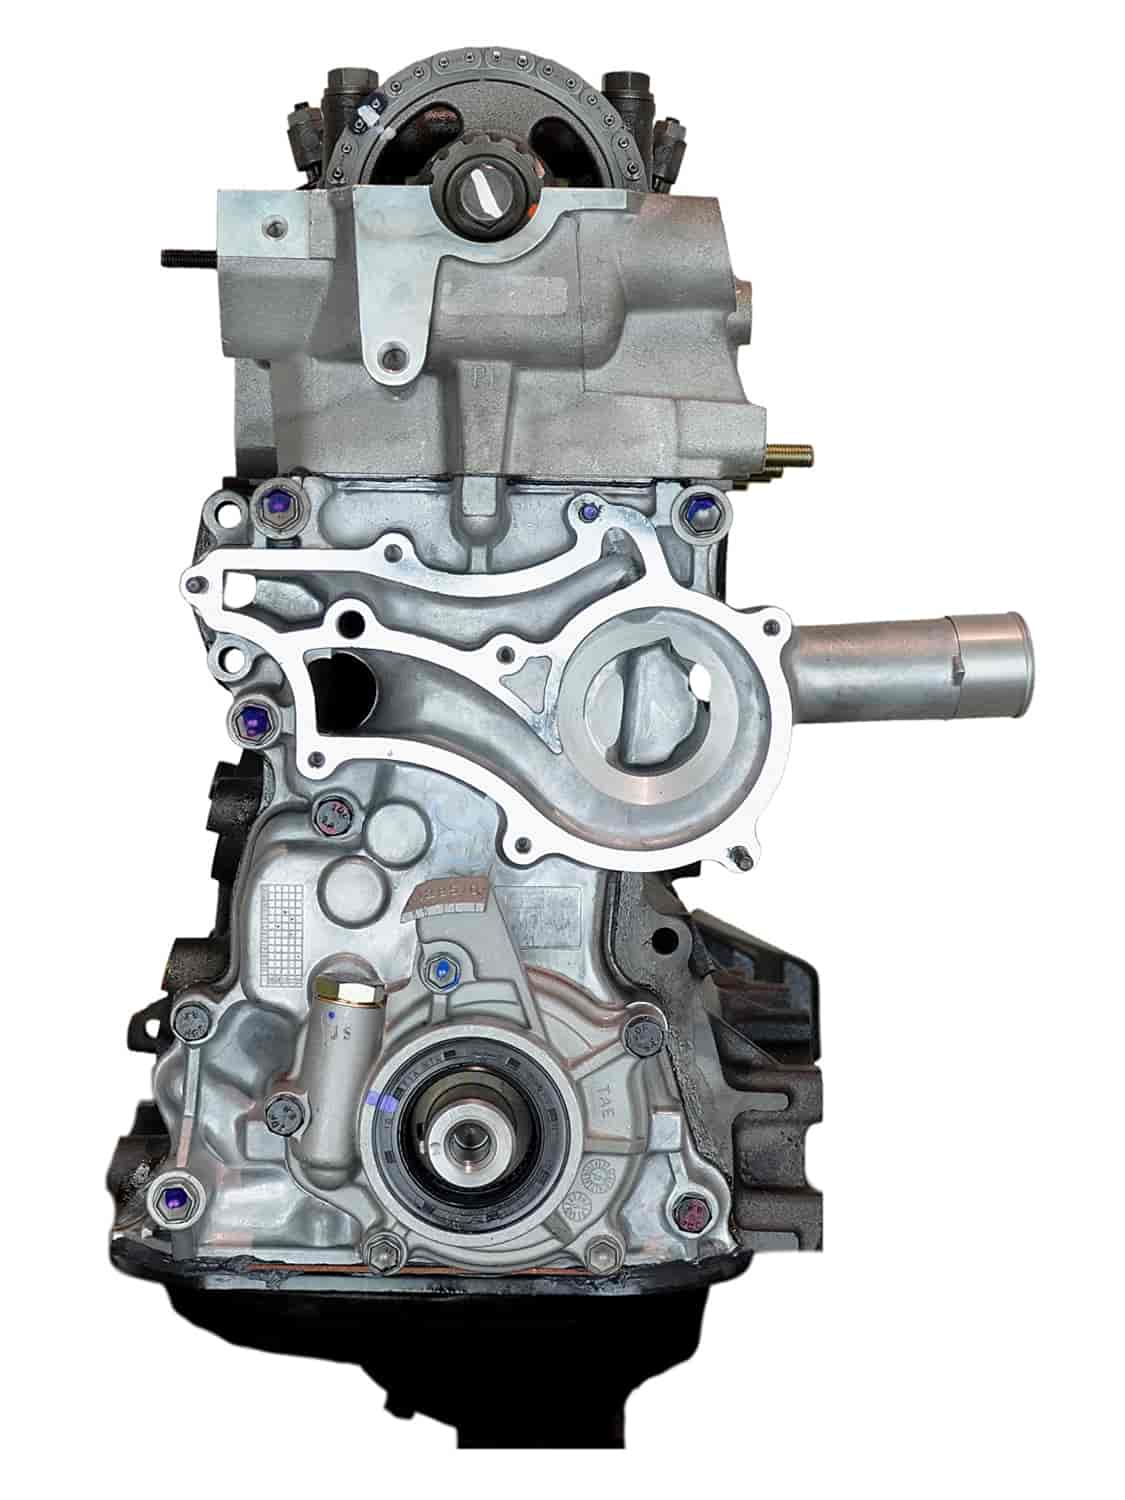 Atk Engines V813d Remanufactured Crate Engine For 1984